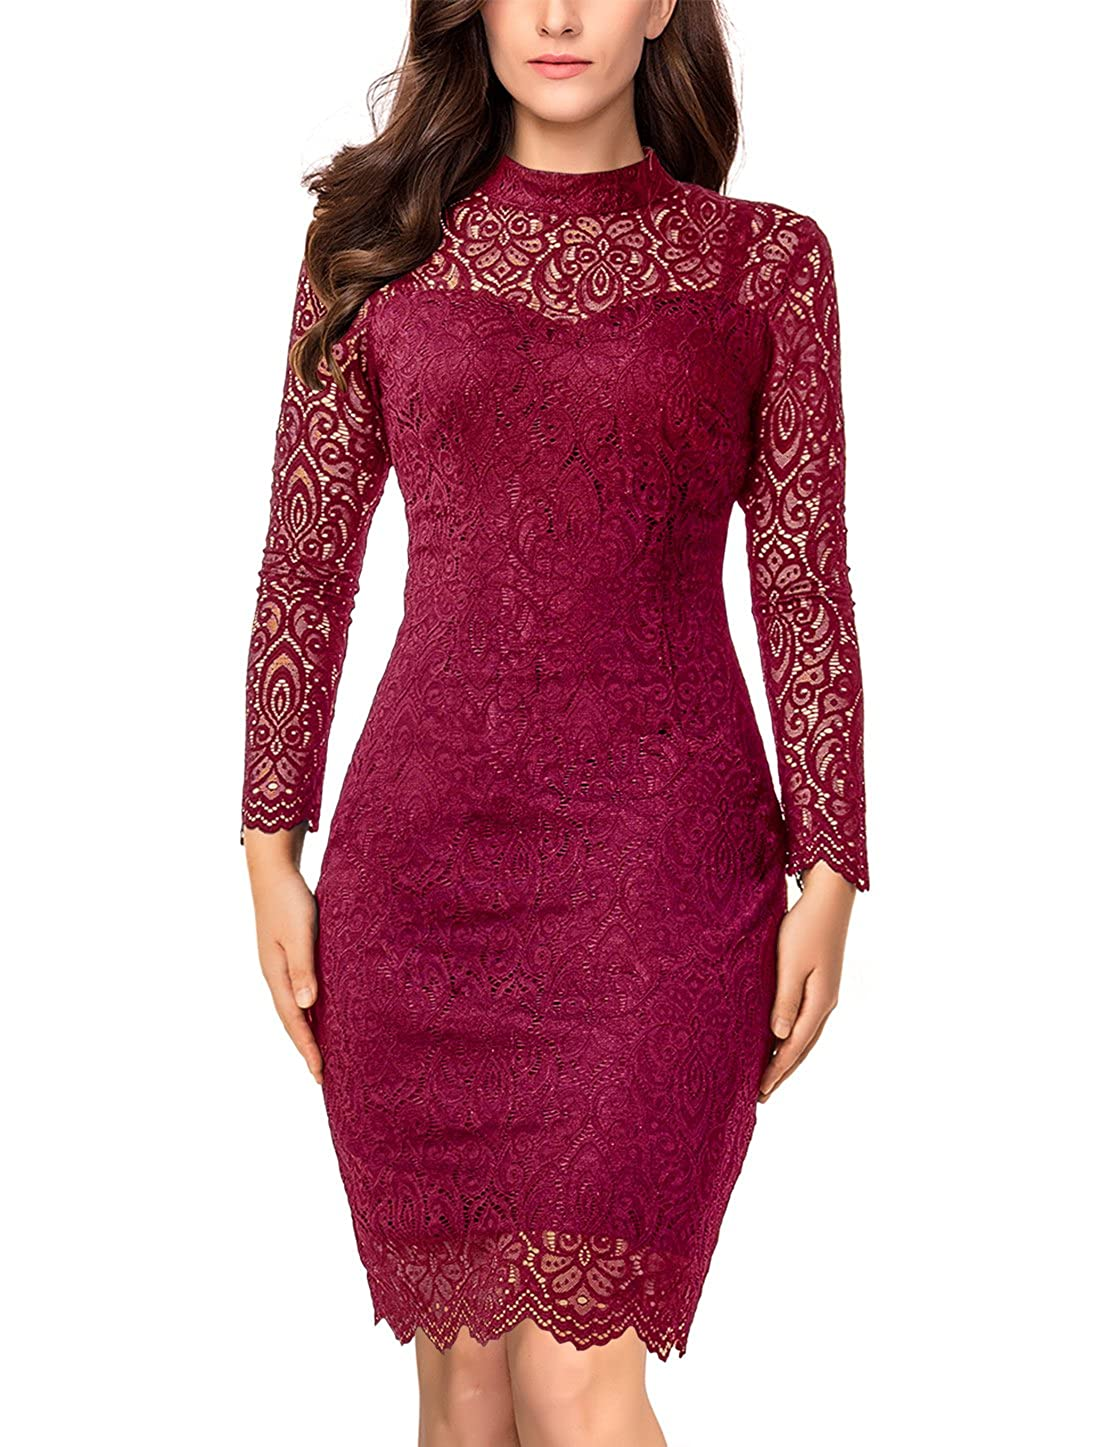 Noctflos Women's Floral Lace Long Sleeve Bodycon Pencil Cocktail Party Dress L201